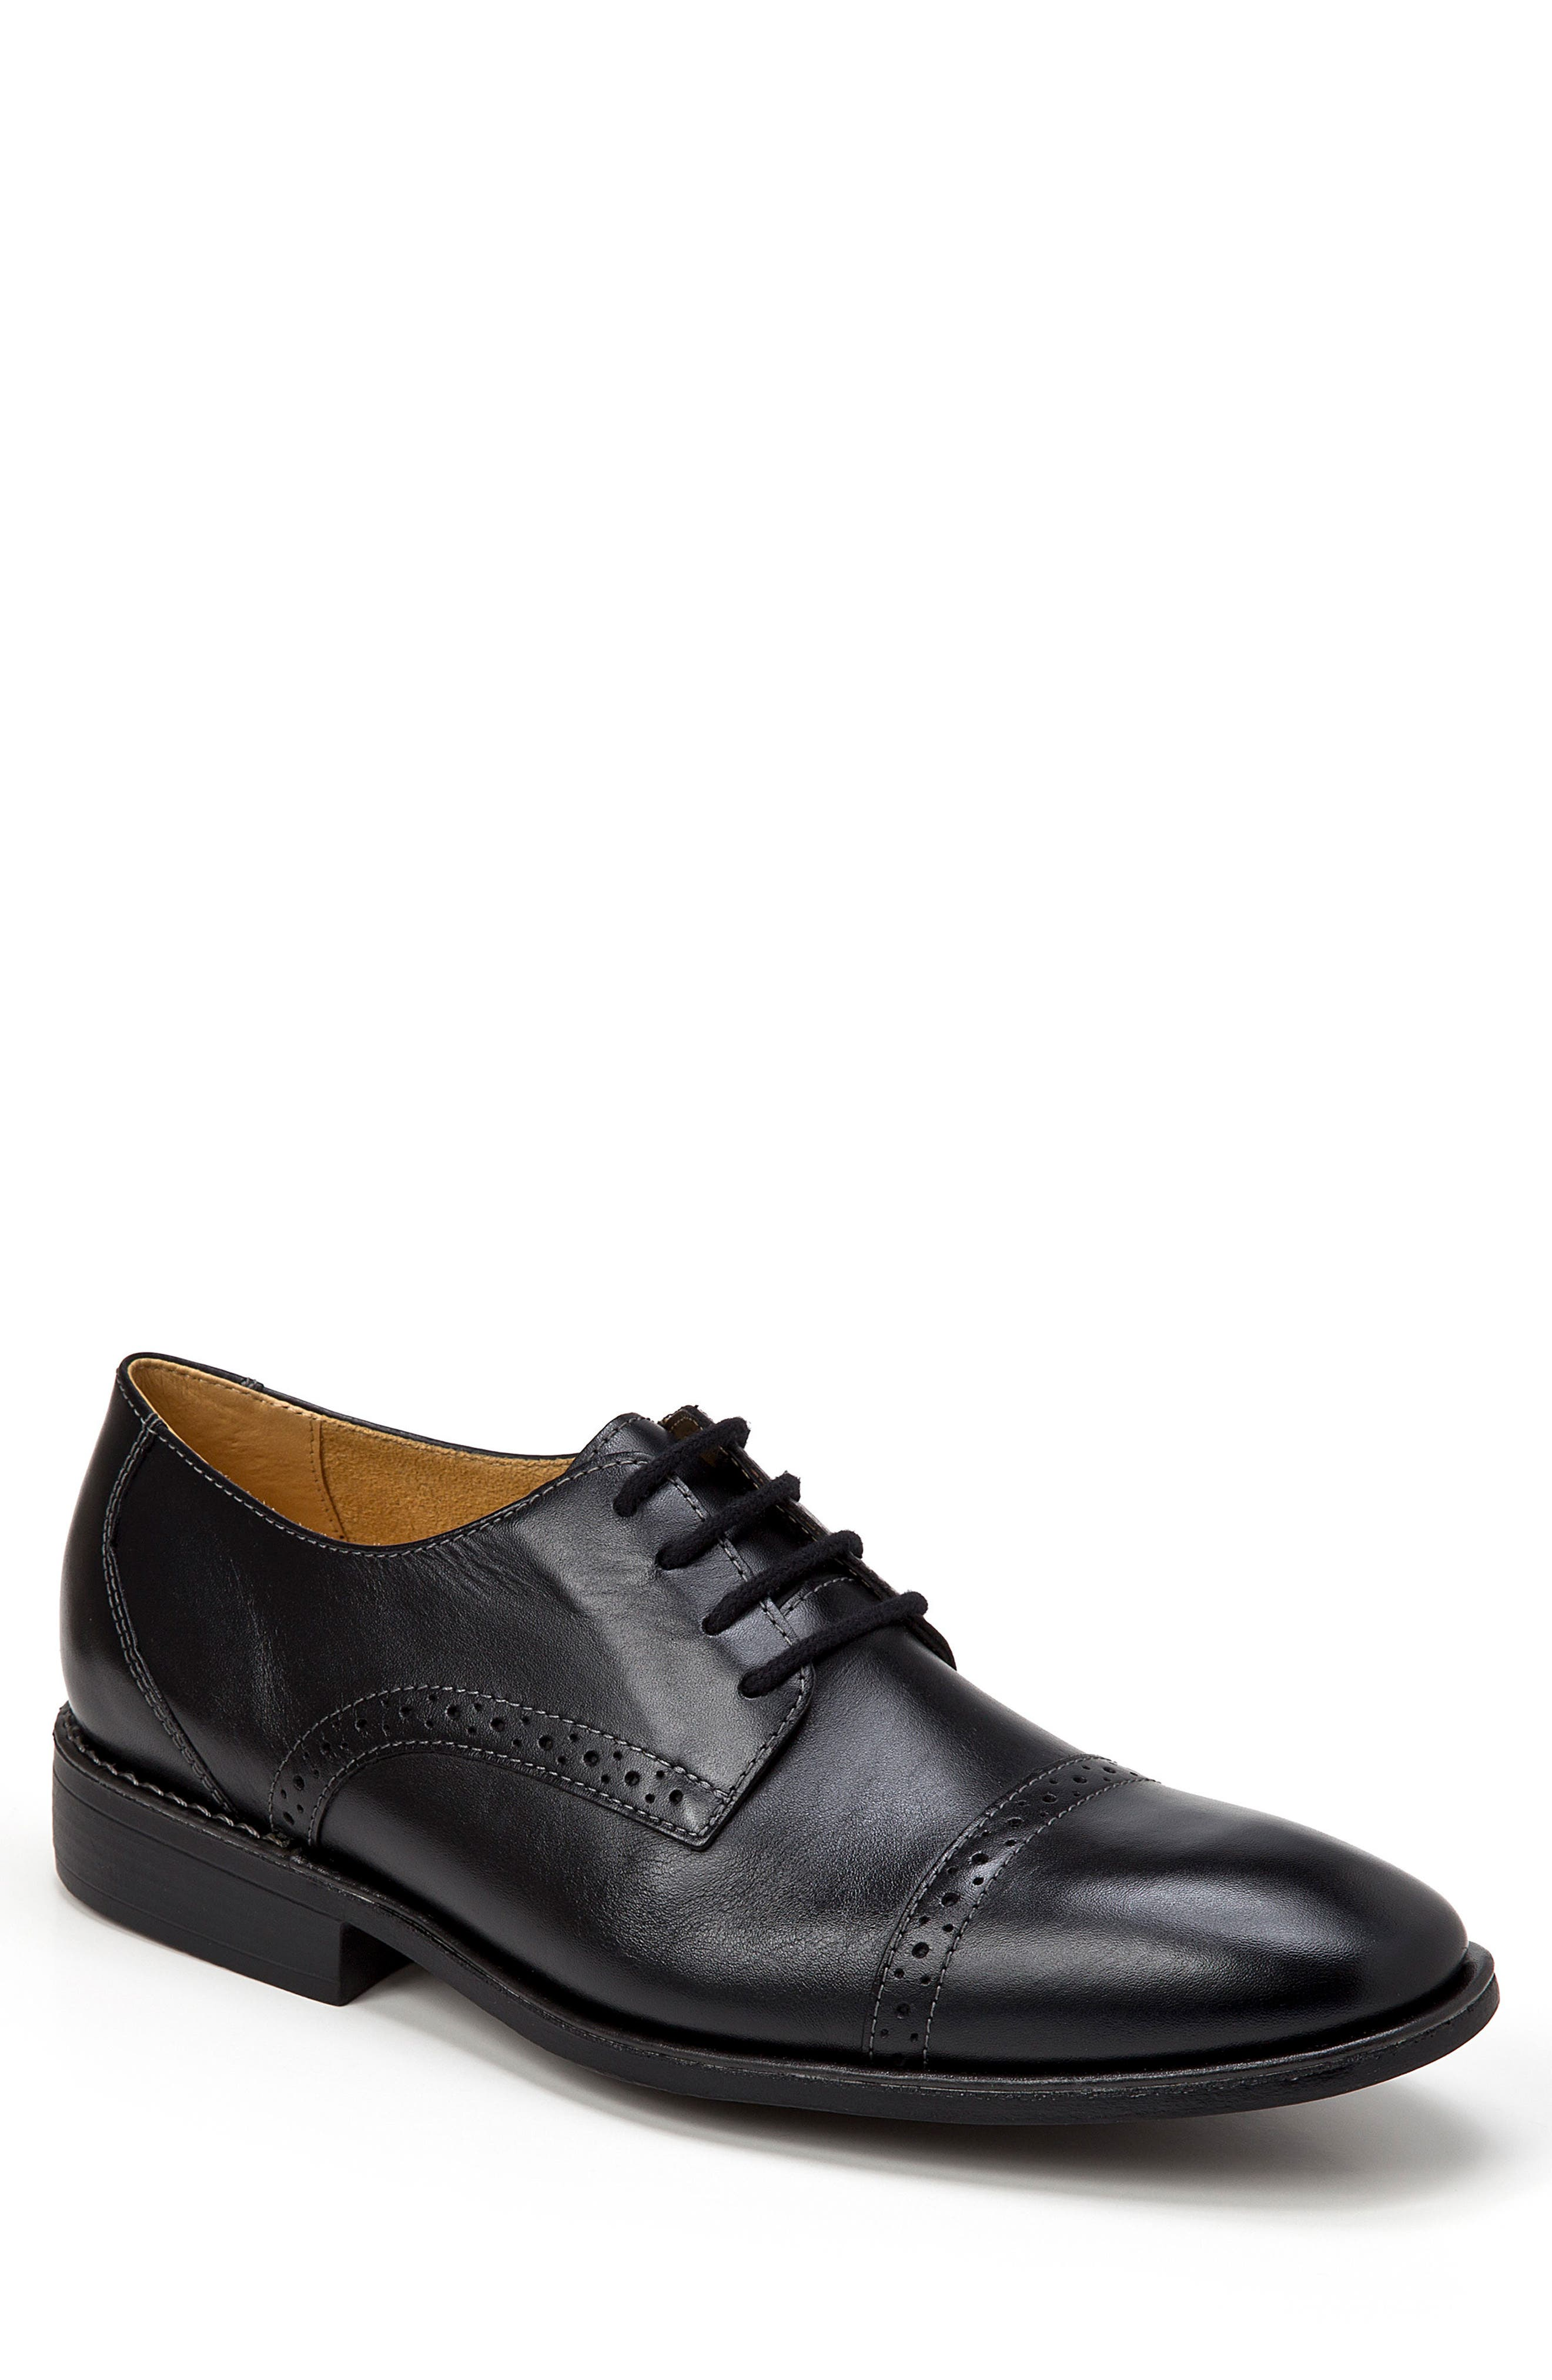 Alternate Image 1 Selected - Sandro Moscoloni Elbert Cap Toe Derby (Men)